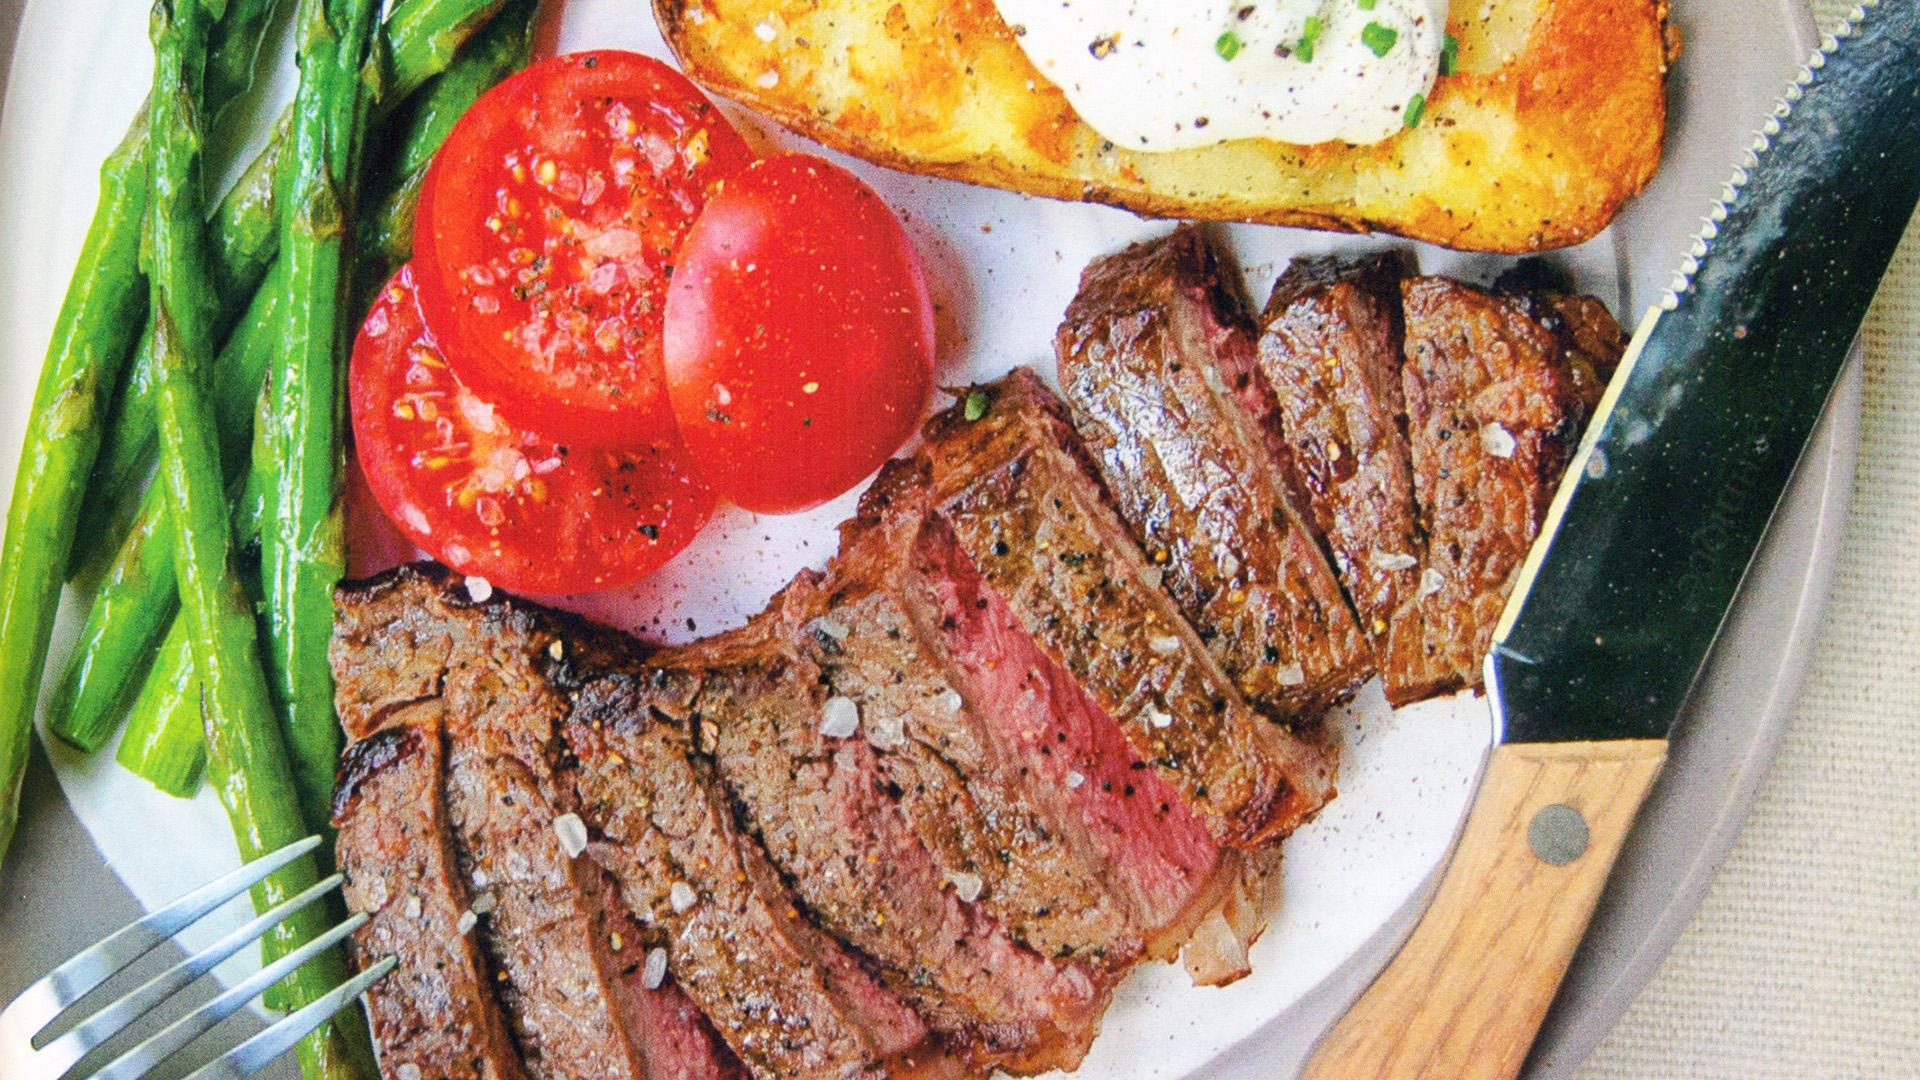 New York Strip Steak with Baked Potatoes and Asparagus